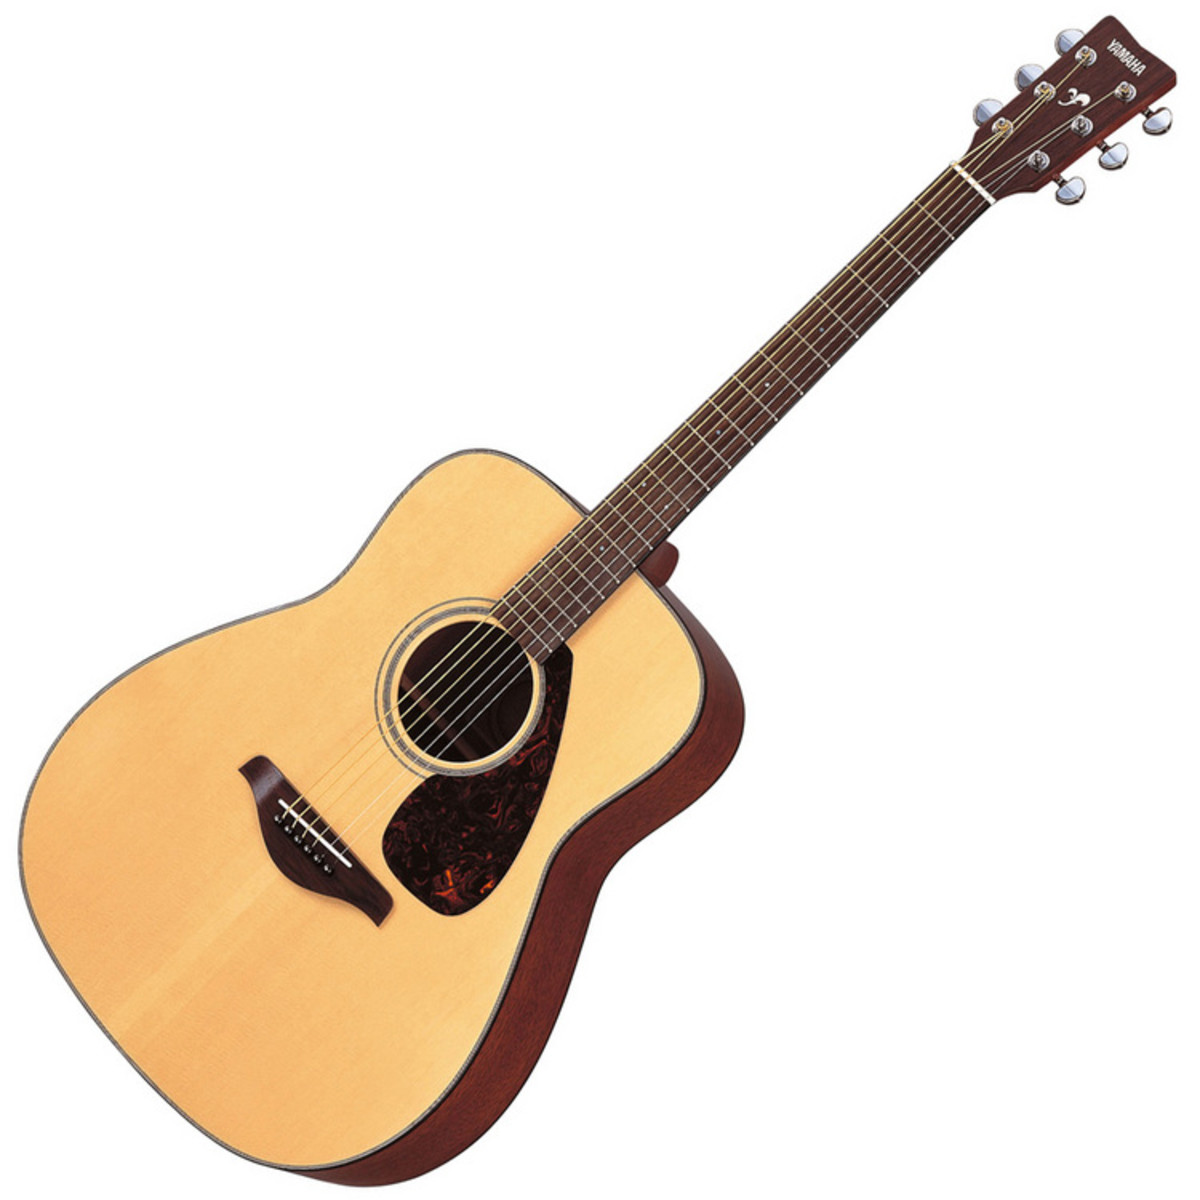 Disc yamaha fg700ms acoustic guitar matt gloss at for Yamaha classic guitar